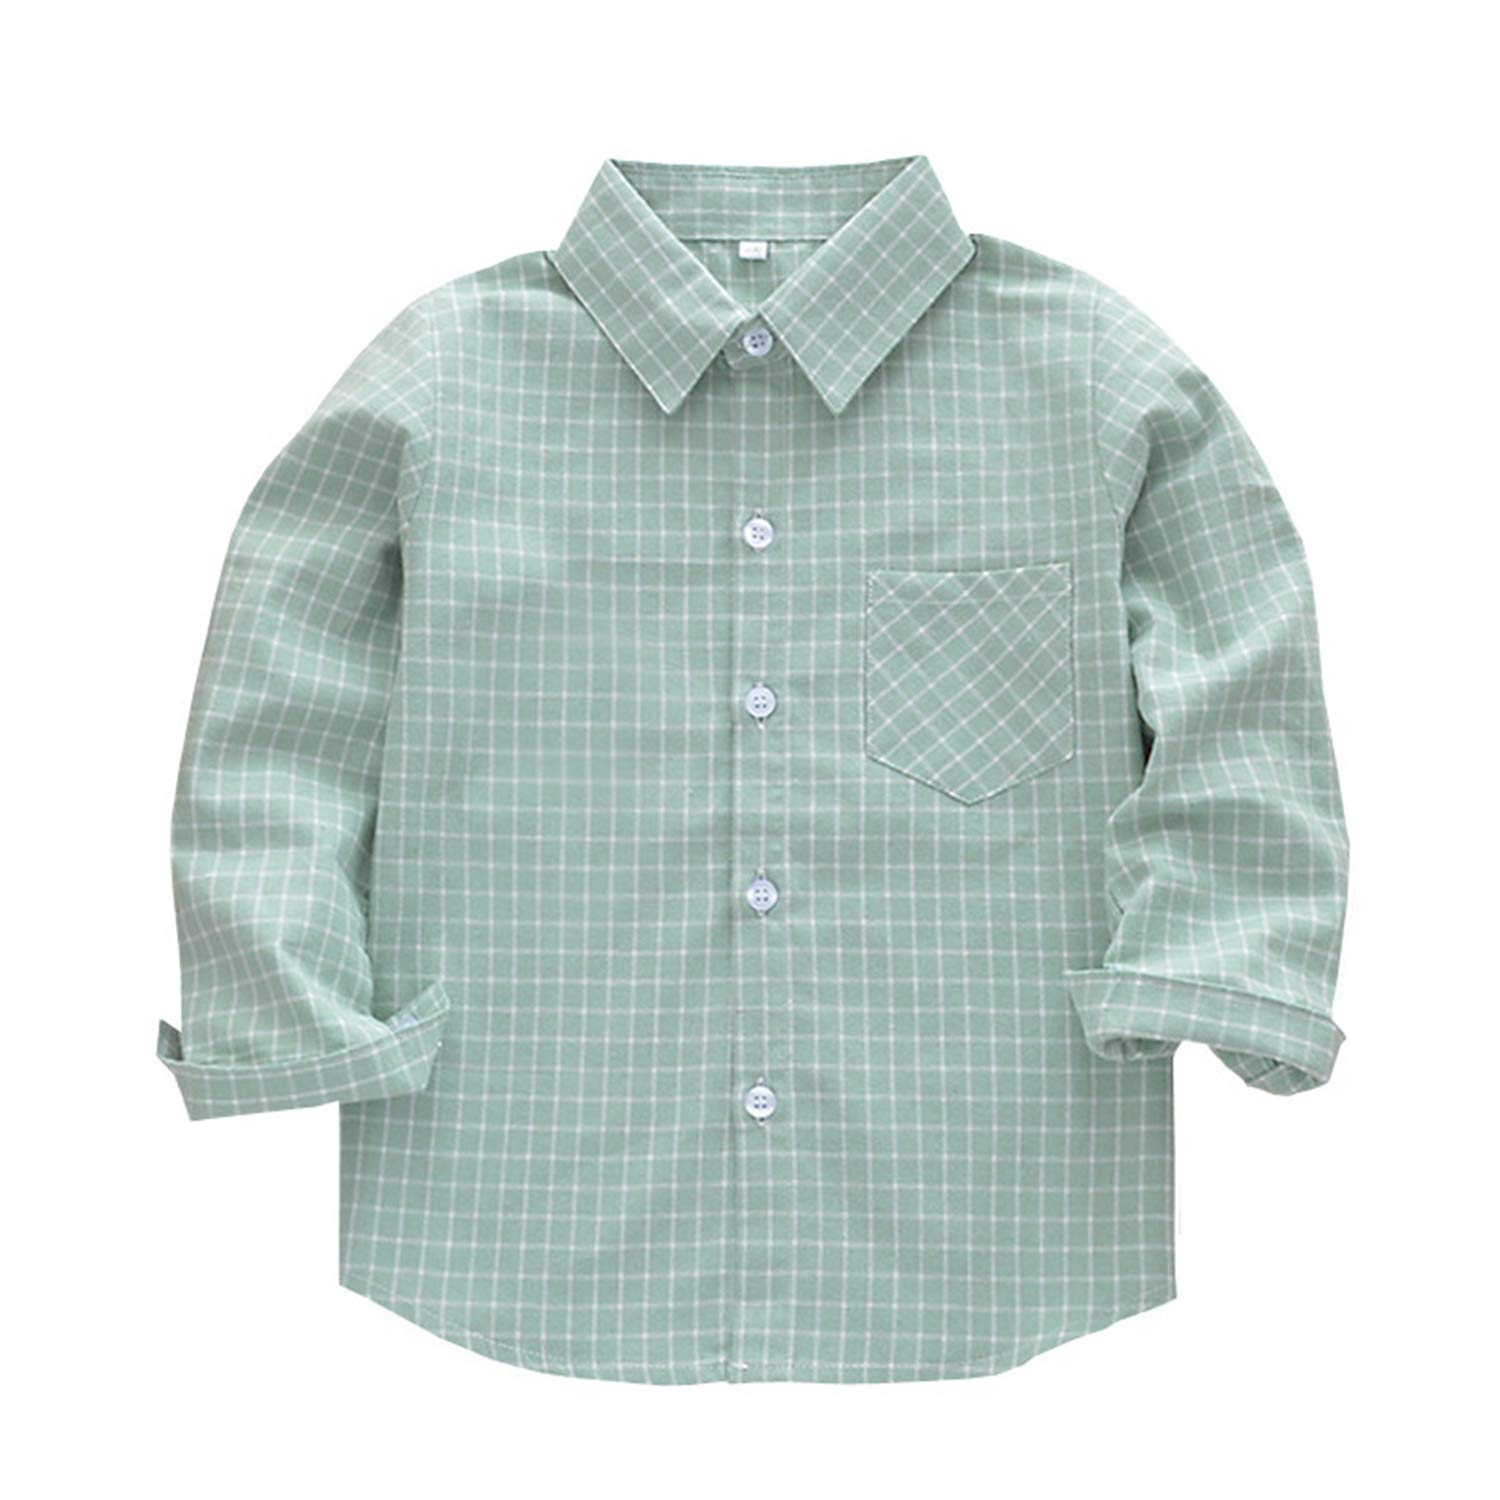 Thinkin Children Boys Shirts Classic Casual Plaid for 3-11 Years Kids Boy Spring//Autumn Wear Clothes